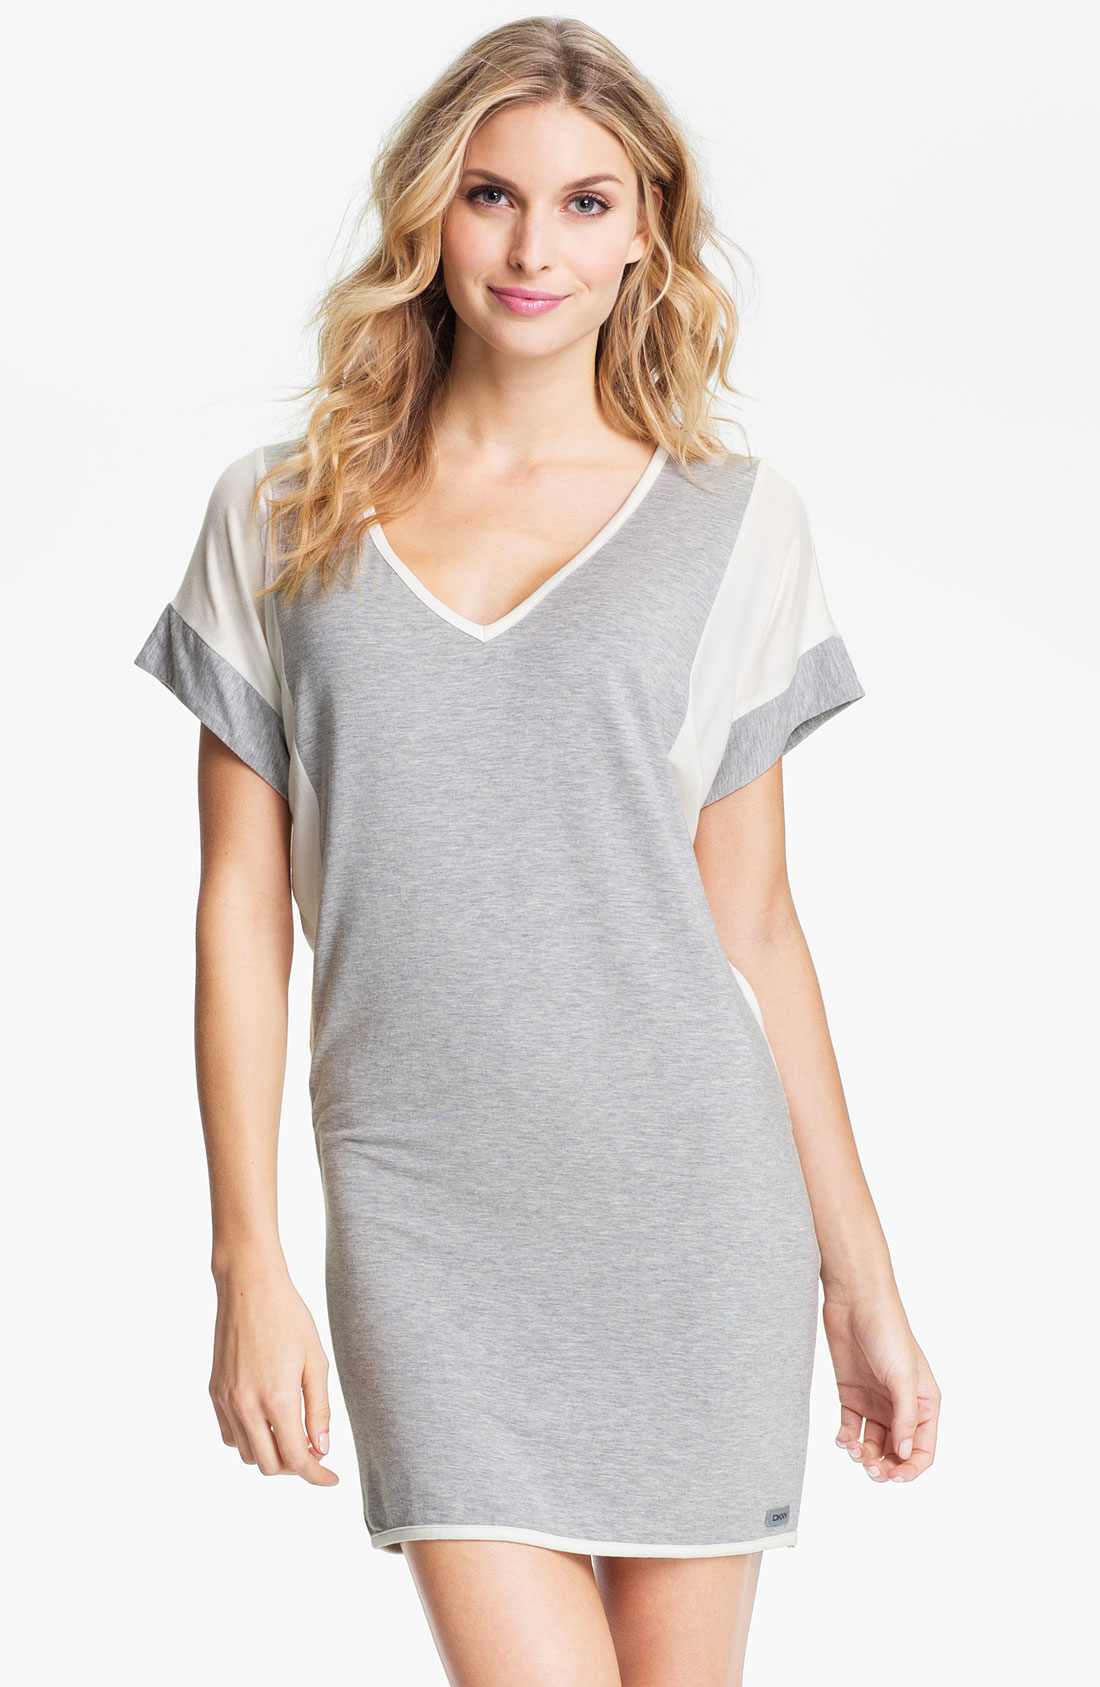 dkny short sleeve sleep shirt in gray grey heather lyst ForSleep Shirt Short Sleeve